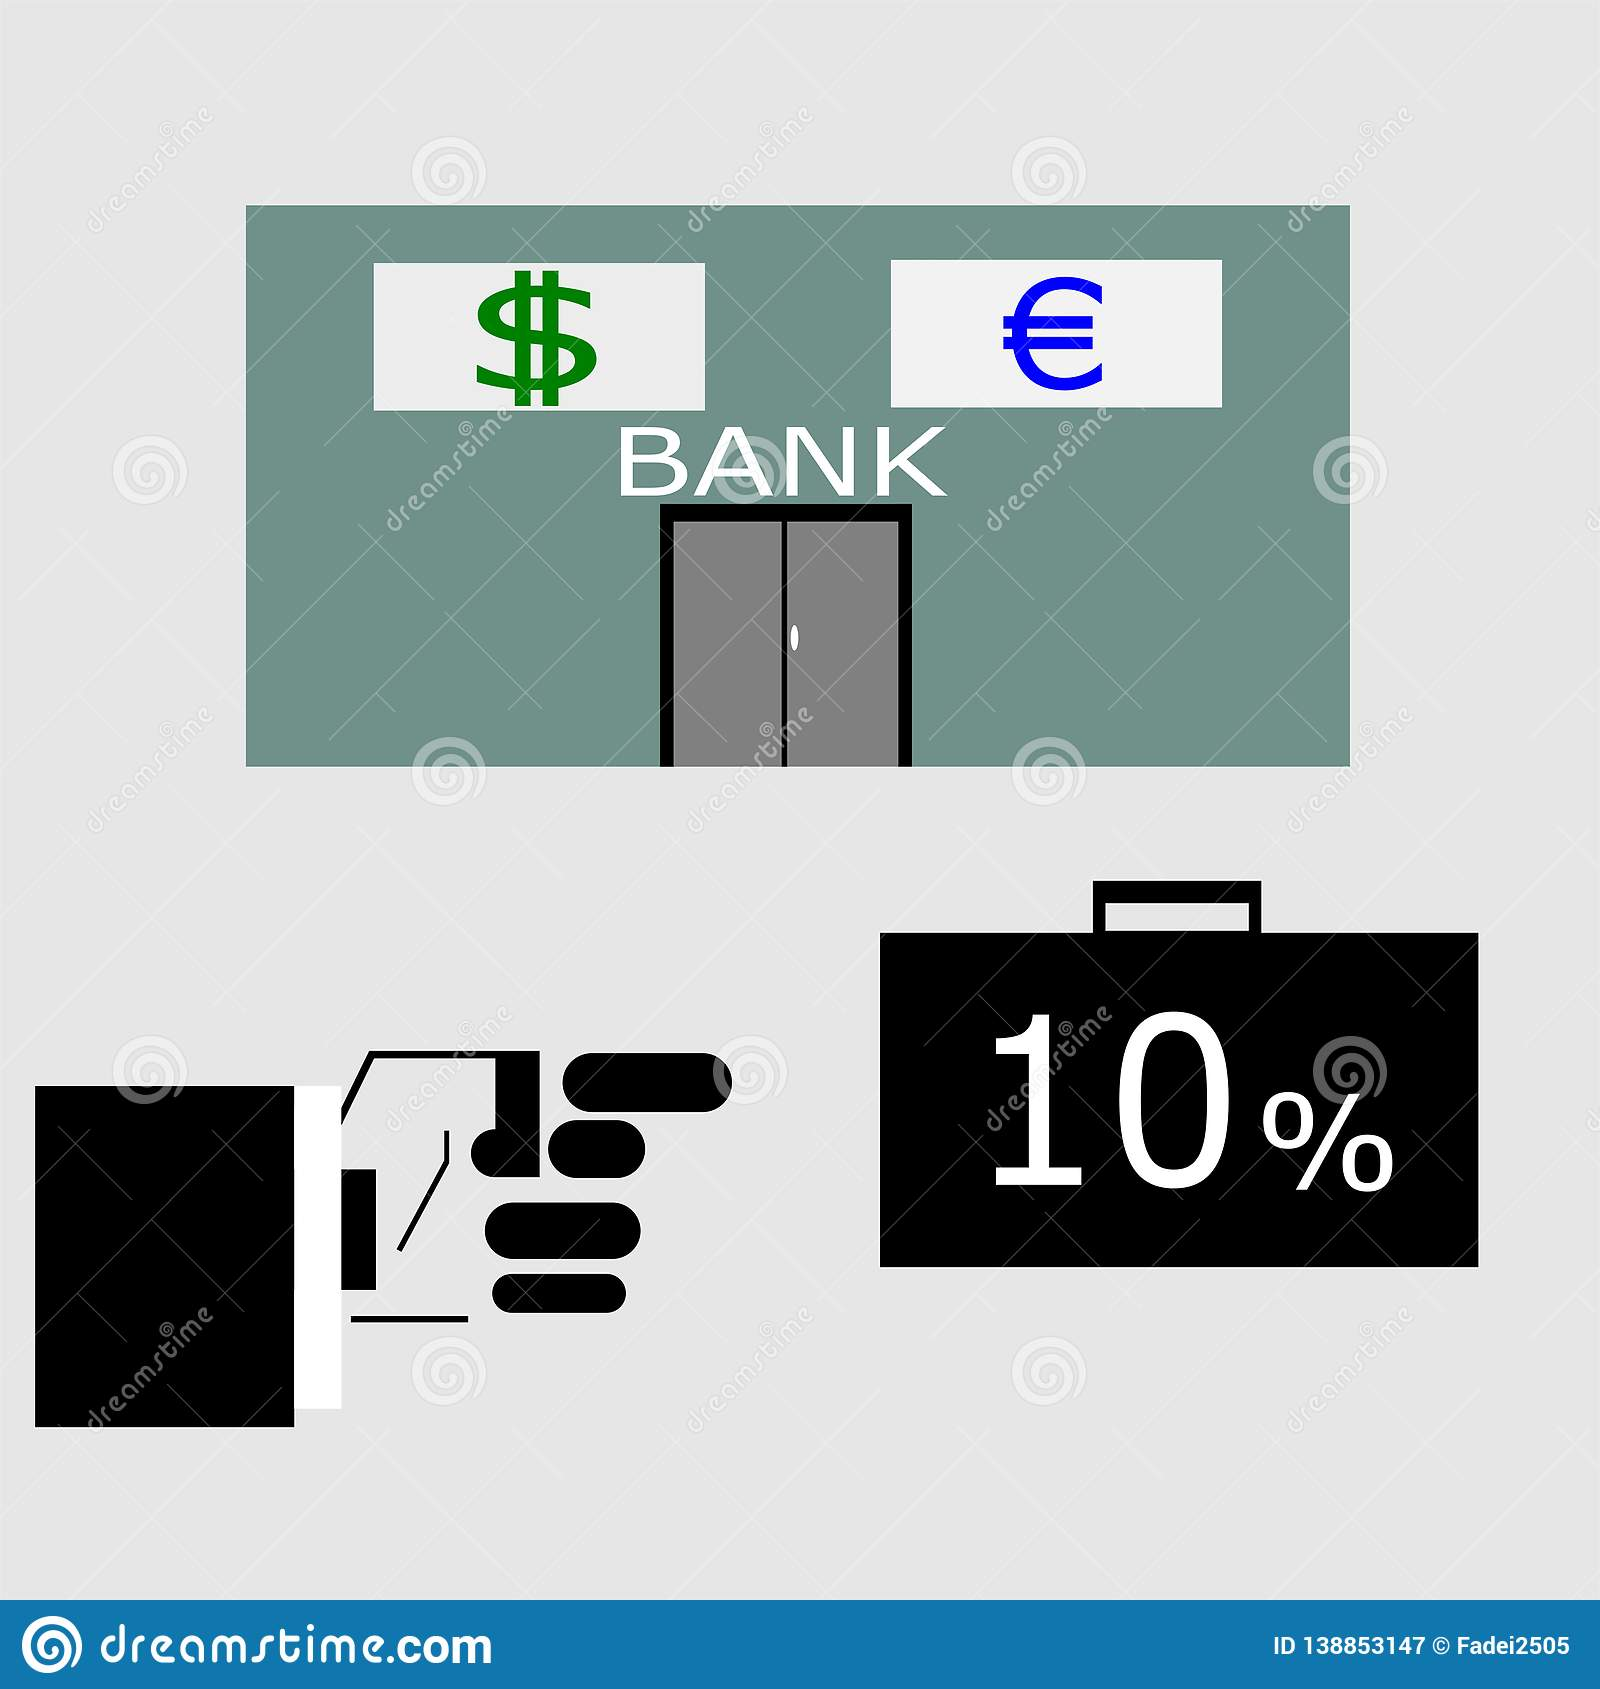 Interest on the bank and loan business.